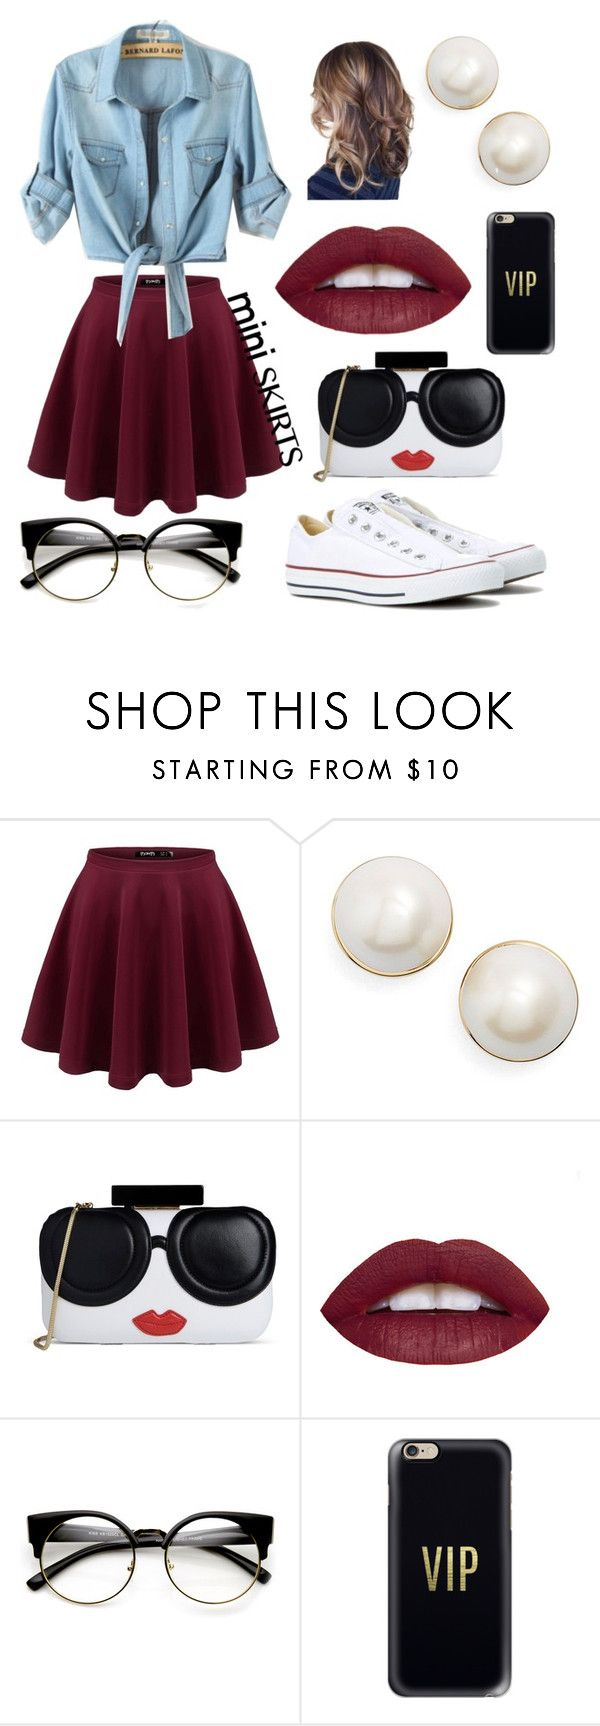 """""""Untitled #22"""" by rebekahmm ❤ liked on Polyvore featuring Kate Spade, Alice + Olivia, Casetify and Converse"""